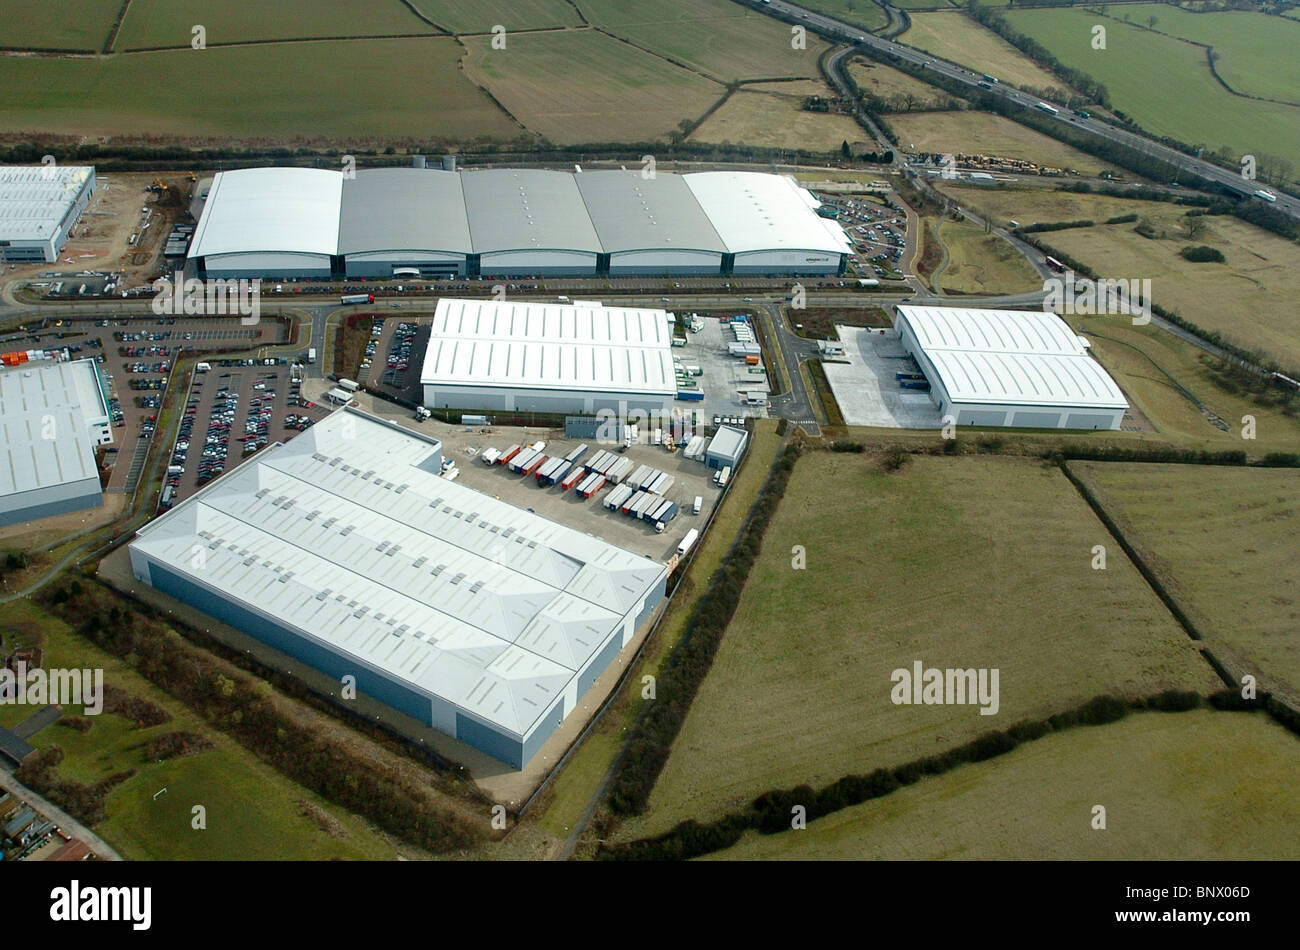 Aerial view of Amazon's distribution centre in Brogborough, Bedfordshire, UK - Stock Image